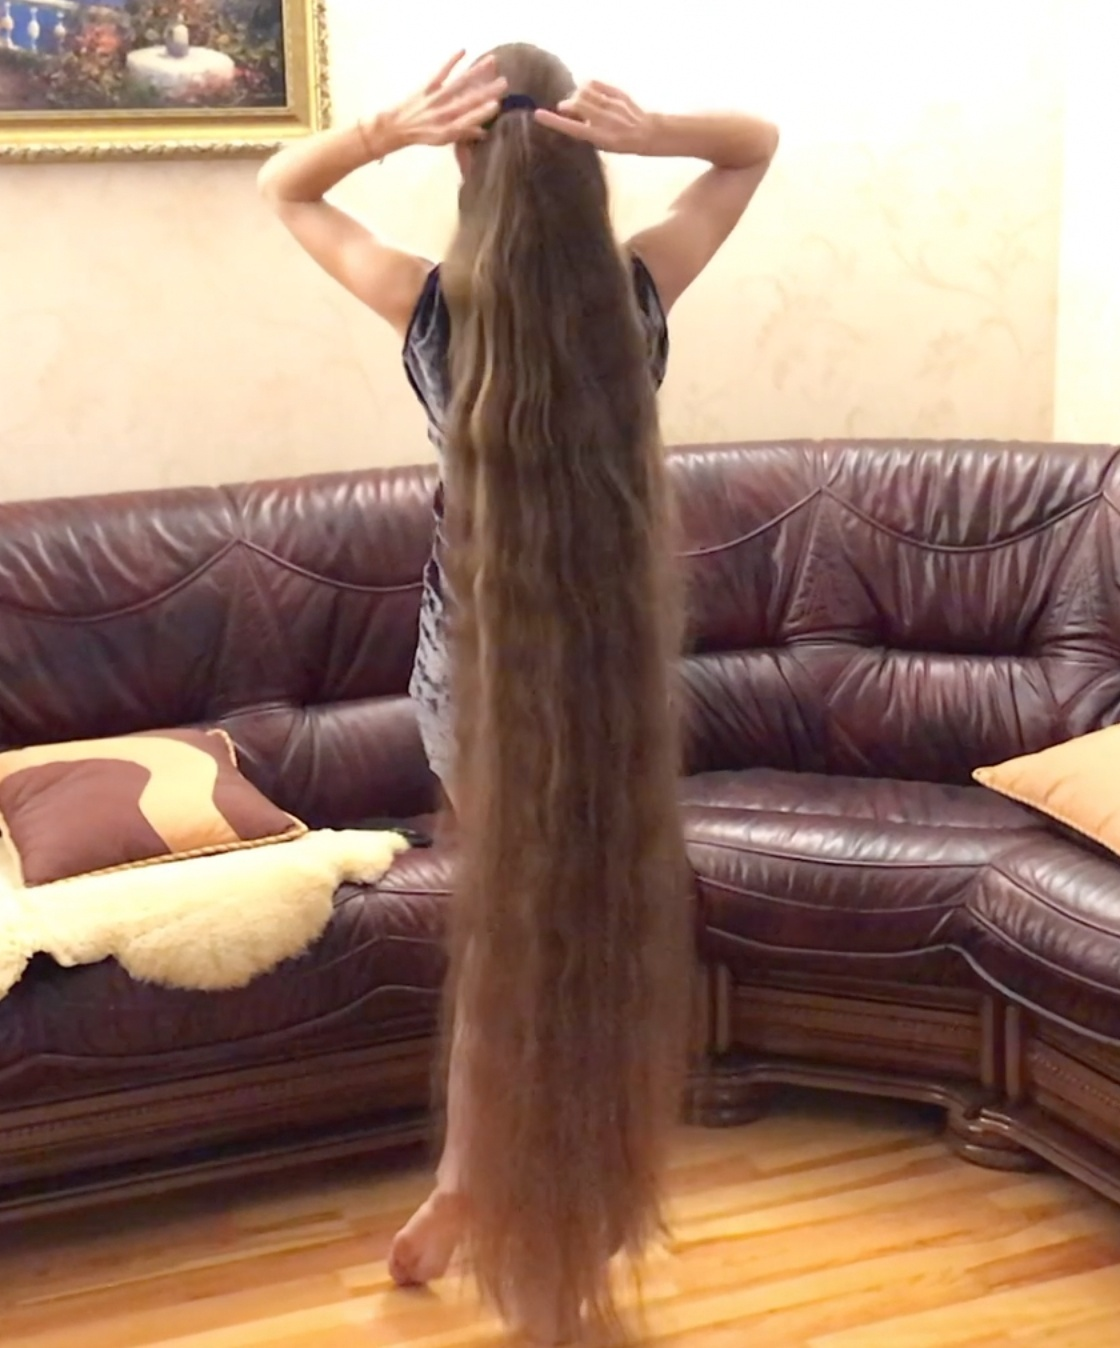 VIDEO - The ponytail